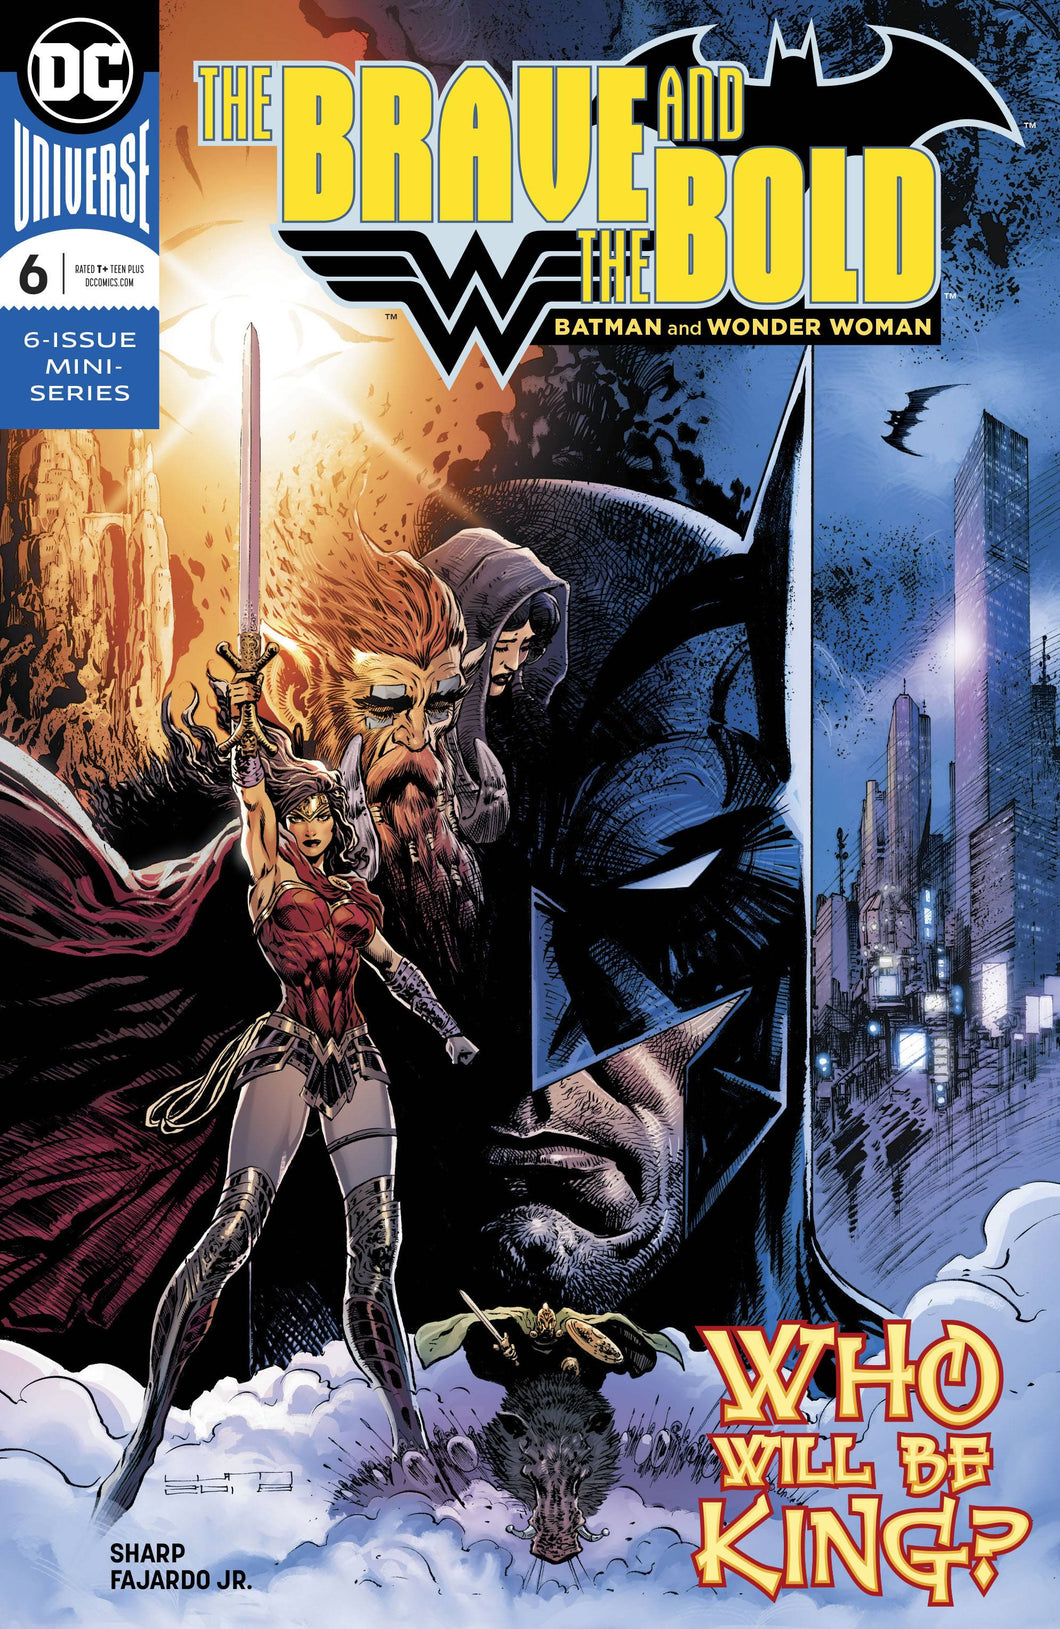 BRAVE & THE BOLD BATMAN & WONDER WOMAN #6 (OF 6) (07/18/2018)